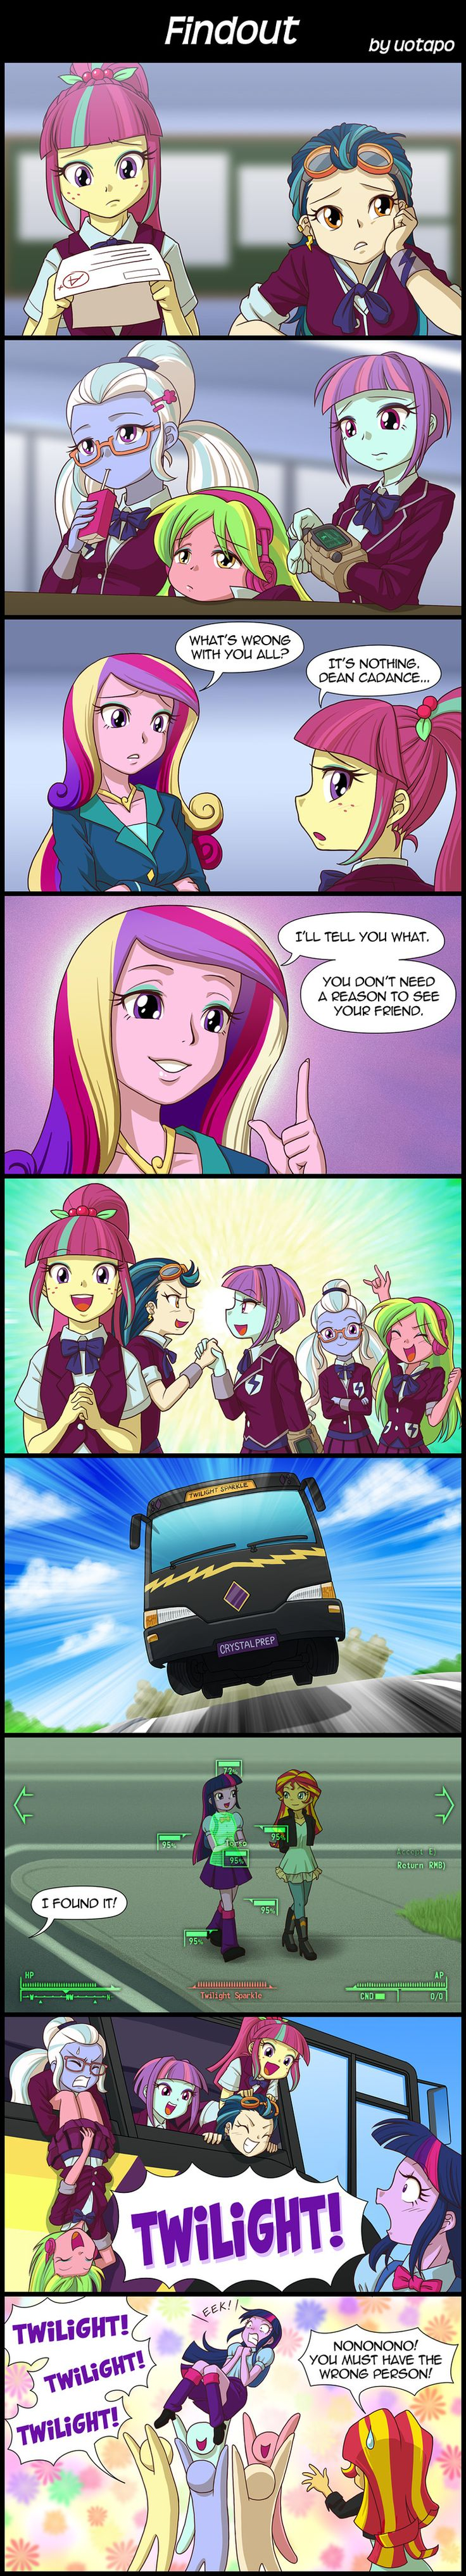 #1041169 - artist:uotapo, bus, comic, crystal prep academy, crystal prep academy uniform, dean cadance, dialogue, equestria girls, fallout, friendship games, indigo zap, lemon zest, mistaken identity, pipboy, princess cadance, princess twilight, safe, shadow five, sour sweet, speech bubble, spoiler:friendship games, sugarcoat, sunny flare, sunset shimmer, sweatdrop, test paper, twilight sparkle, uotapo is trying to murder us, v.a.t.s. - Derpibooru - My Little Pony: Friendship is Magic…